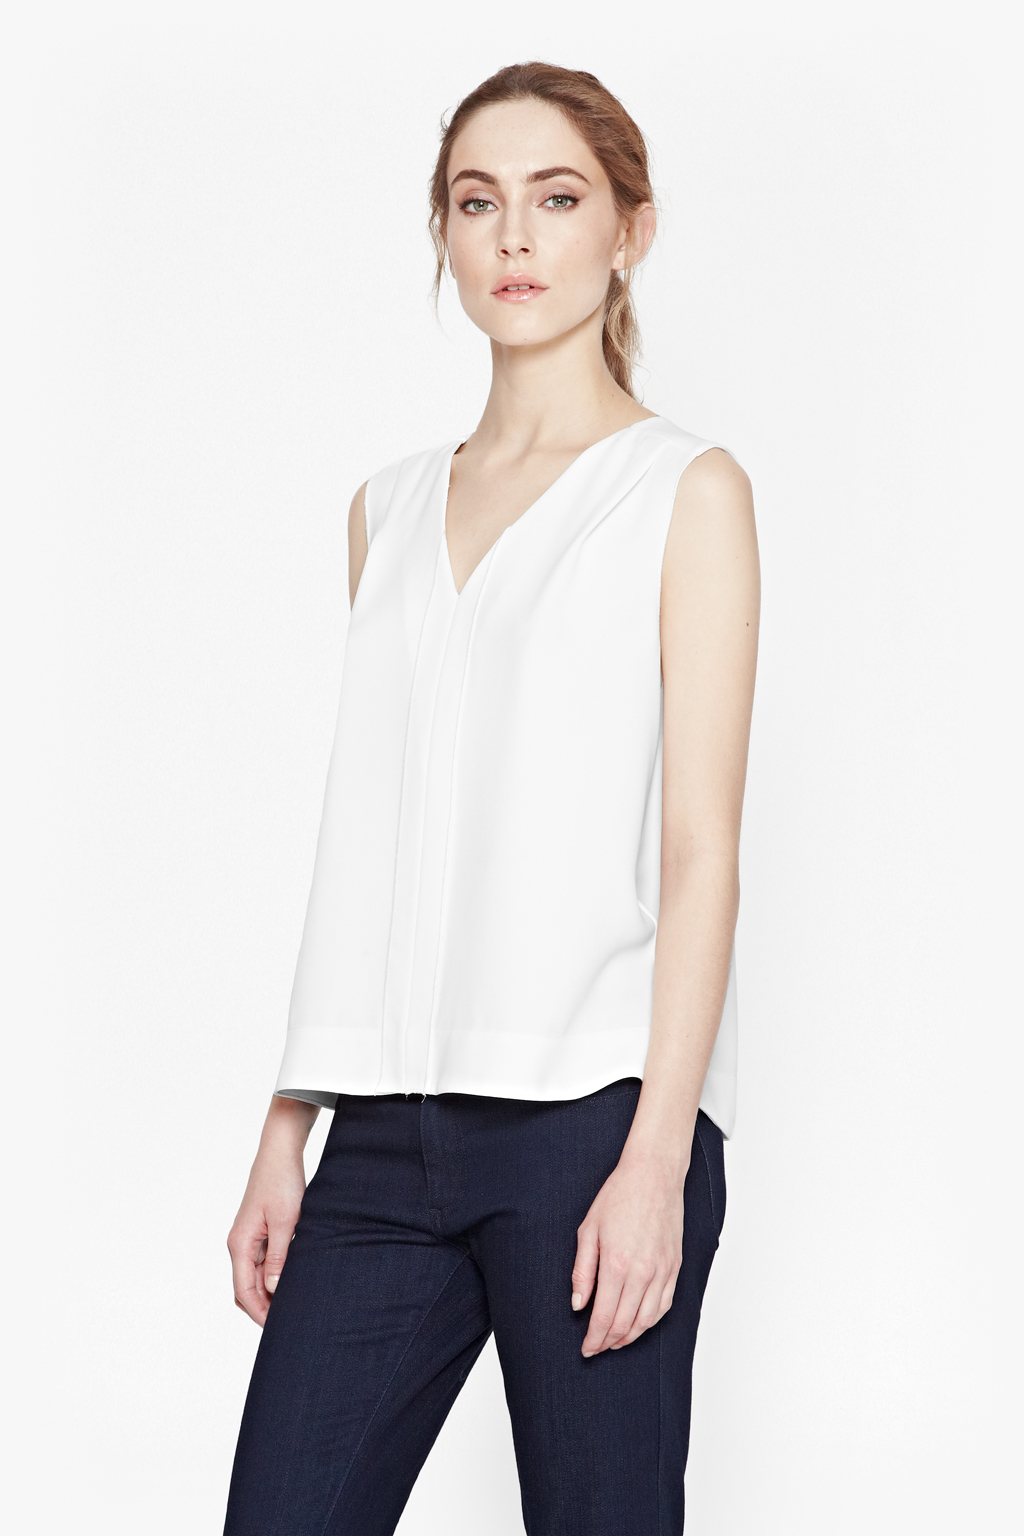 Black/Multi - French Connection Women's BDI15RN Beautiful Bella Crepe Top - Brand Clothes Sale at willbust.ml: Designer clothing, brand shoes, trendy coats, and more for you. Find all seasons goods here %. Enjoy fast delivery!